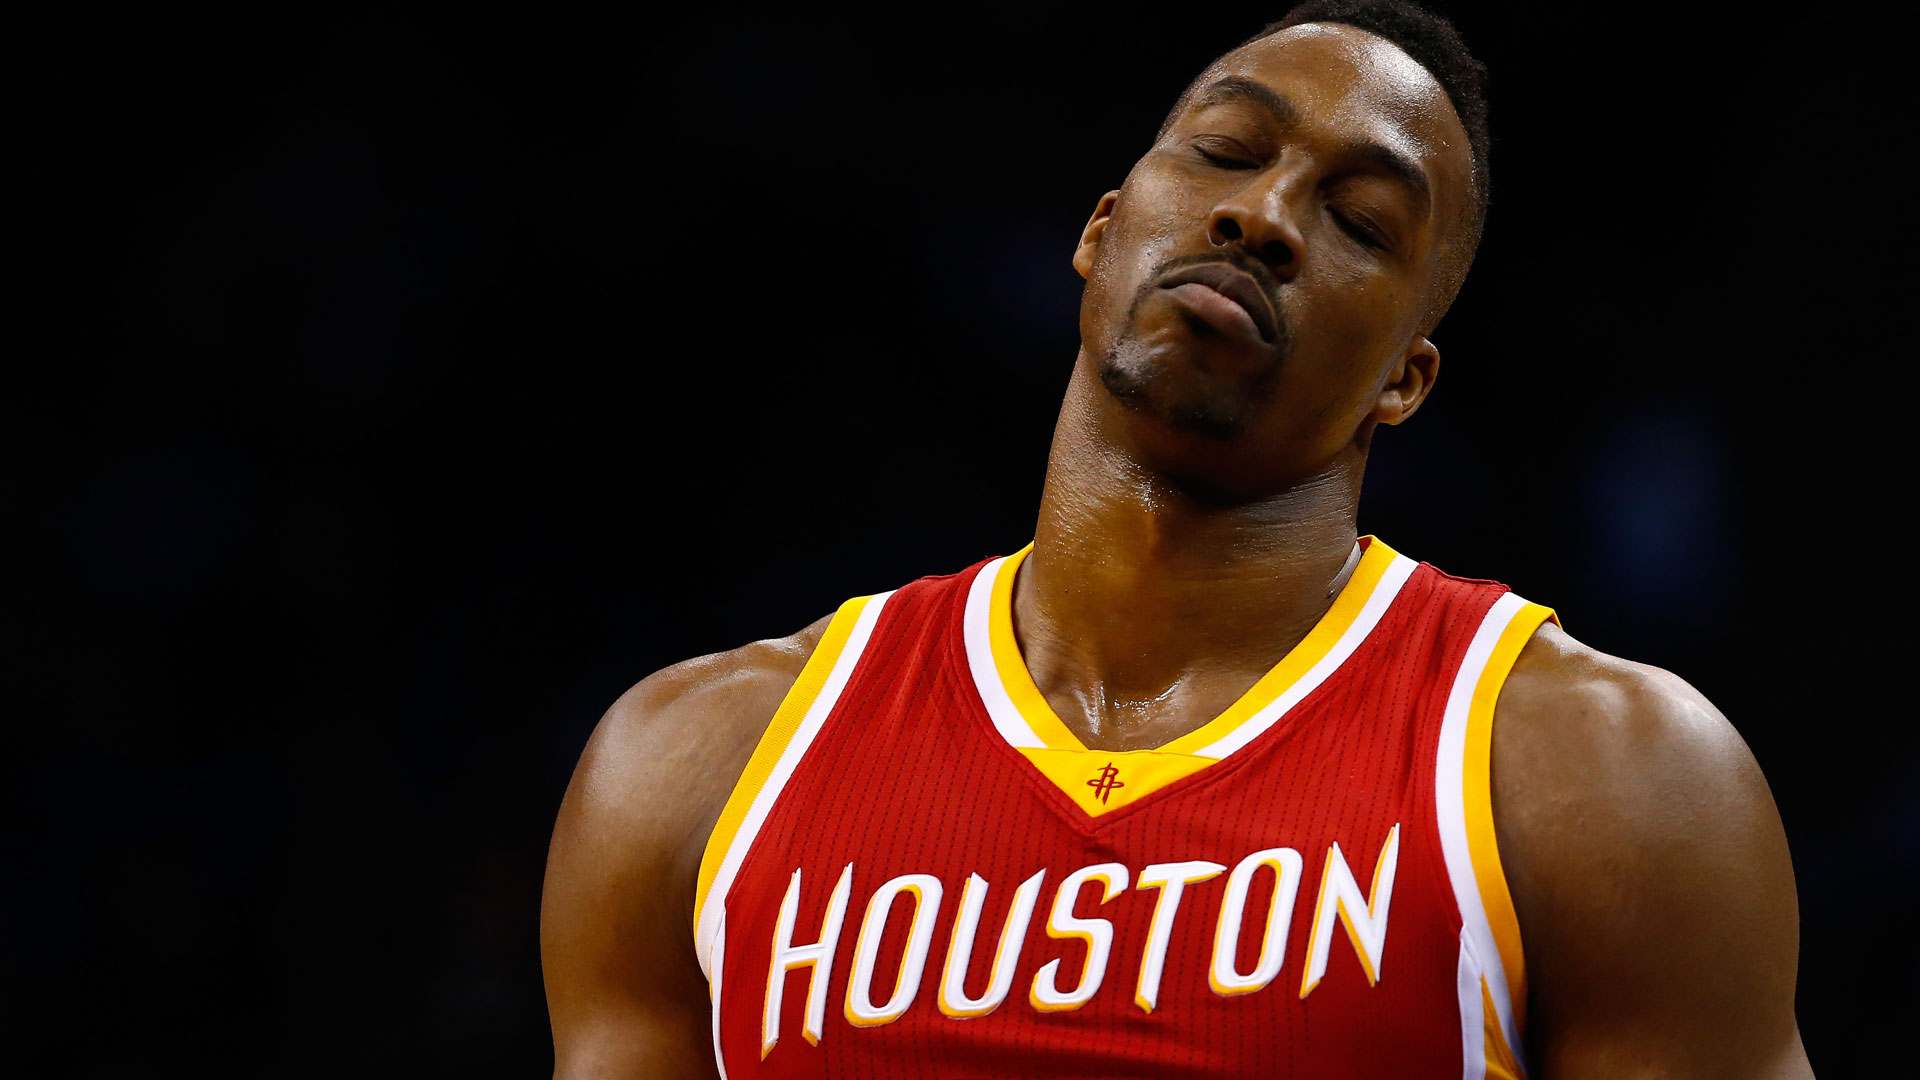 Dwight Howard: Rockets' Dwight Howard Suspended For 2015-16 Season Opener